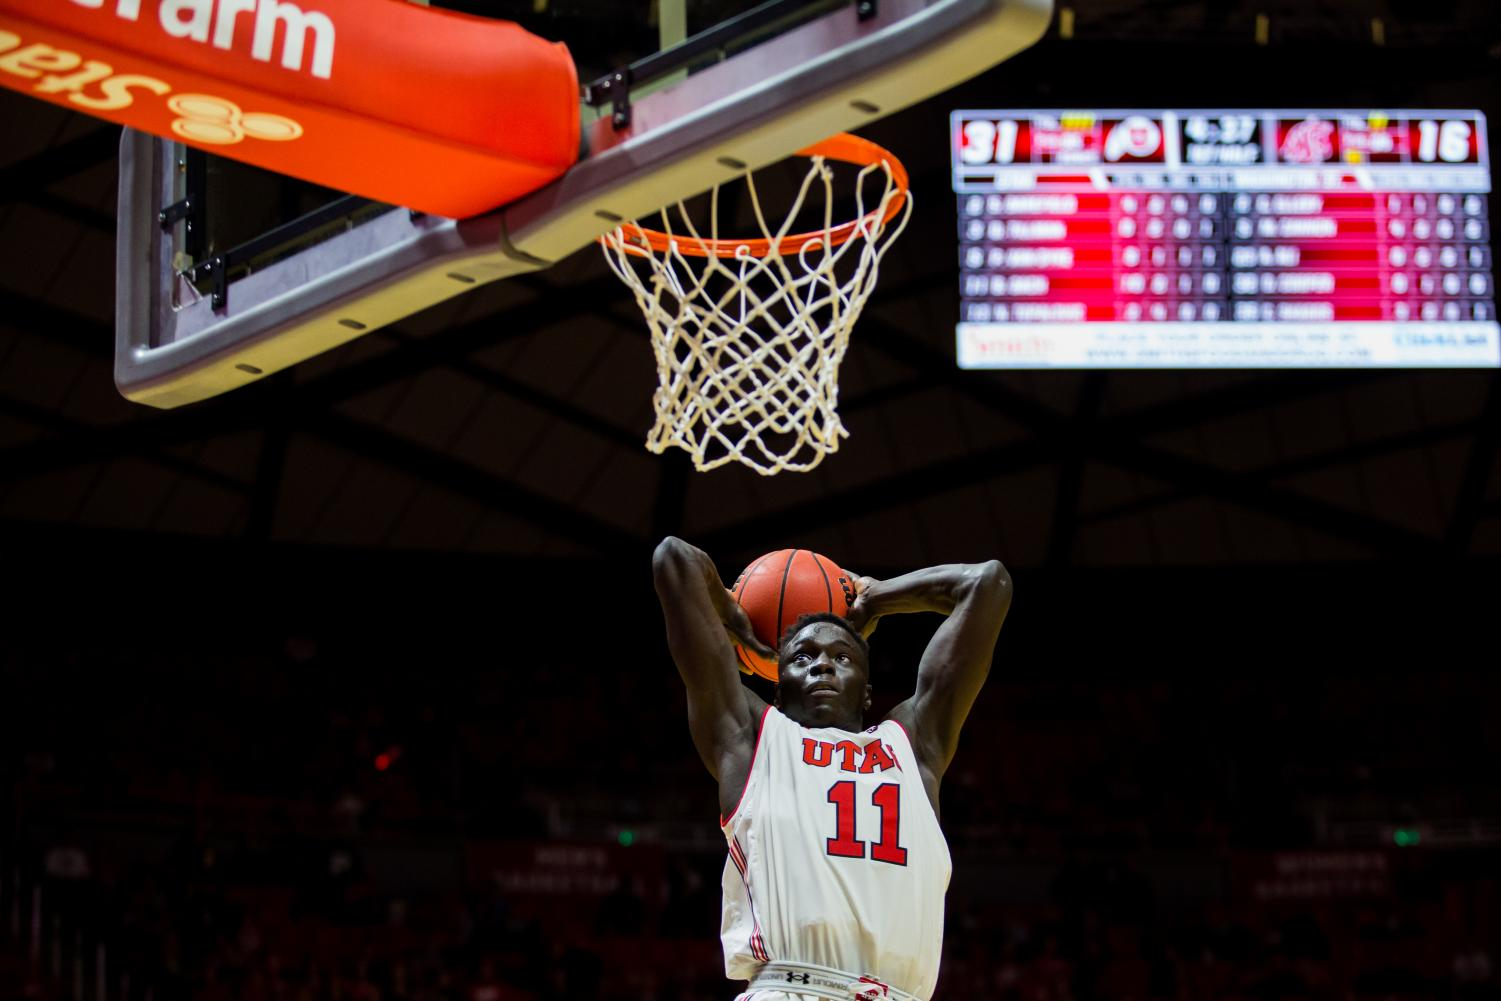 Utah cruises past Mississippi Valley State for largest win vs. DI opponent